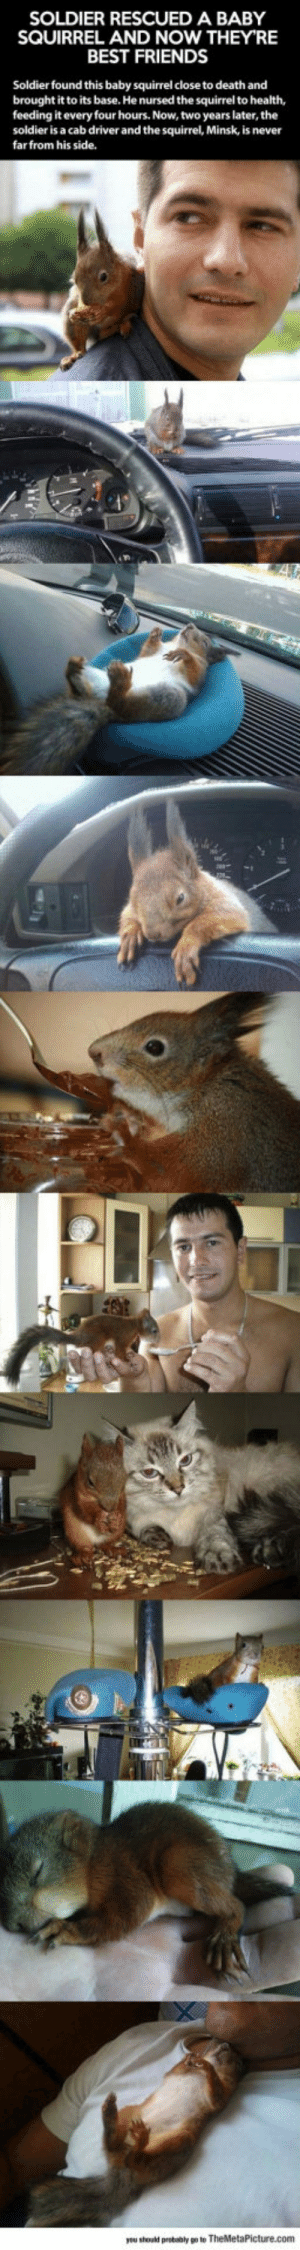 lolzandtrollz:Just A Soldier And His Best Friend: SOLDIER RESCUED A BABY  SQUIRREL AND NOW THEY'RE  BEST FRIENDS  Soldier found this baby squirrel close to death and  brought it to its base. He nursed the squirrel to health,  feeding it every four hours. Now, two years later, the  soldier is a cab driver and the squirrel, Minsk, is never  farfrom his side. lolzandtrollz:Just A Soldier And His Best Friend